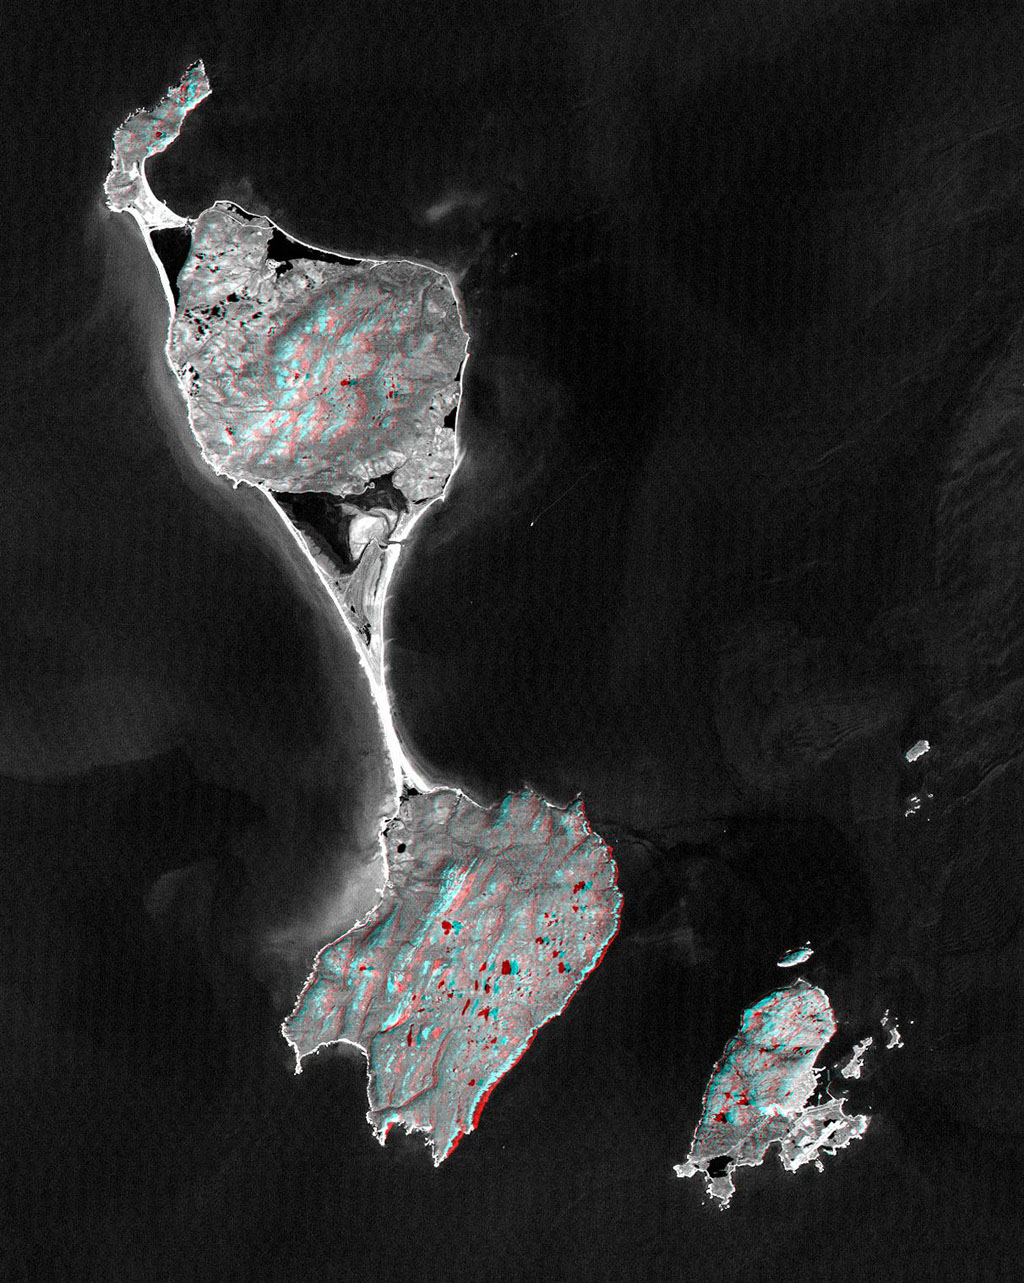 This anaglyph, from NASA's Shuttle Radar Topography Mission, shows Miquelon and Saint Pierre Islands, located south of Newfoundland, Canada. 3D glasses are necessary to view this image.